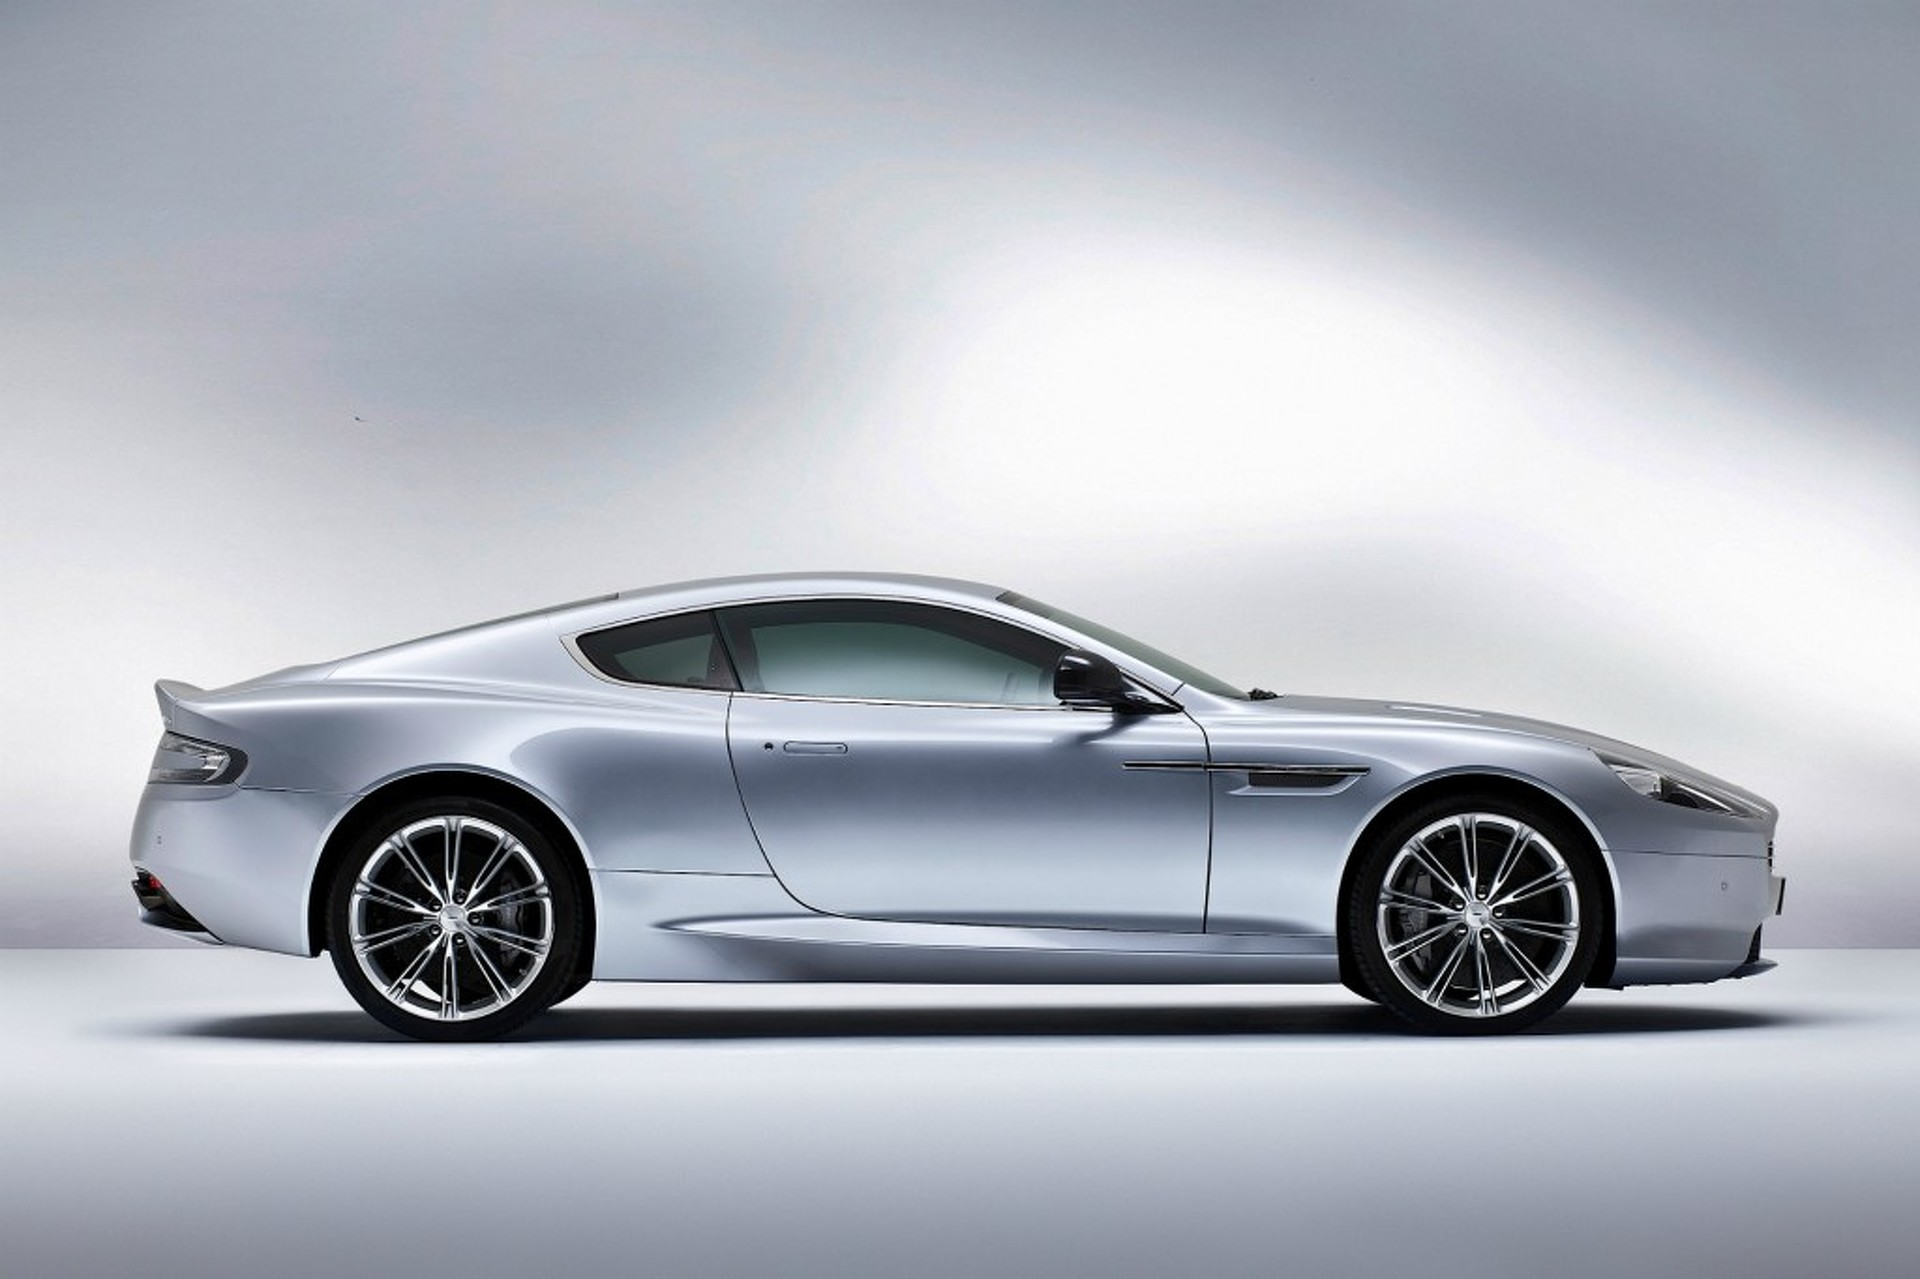 2013 Aston Martin DB9 Brings More Power, Same Sexy